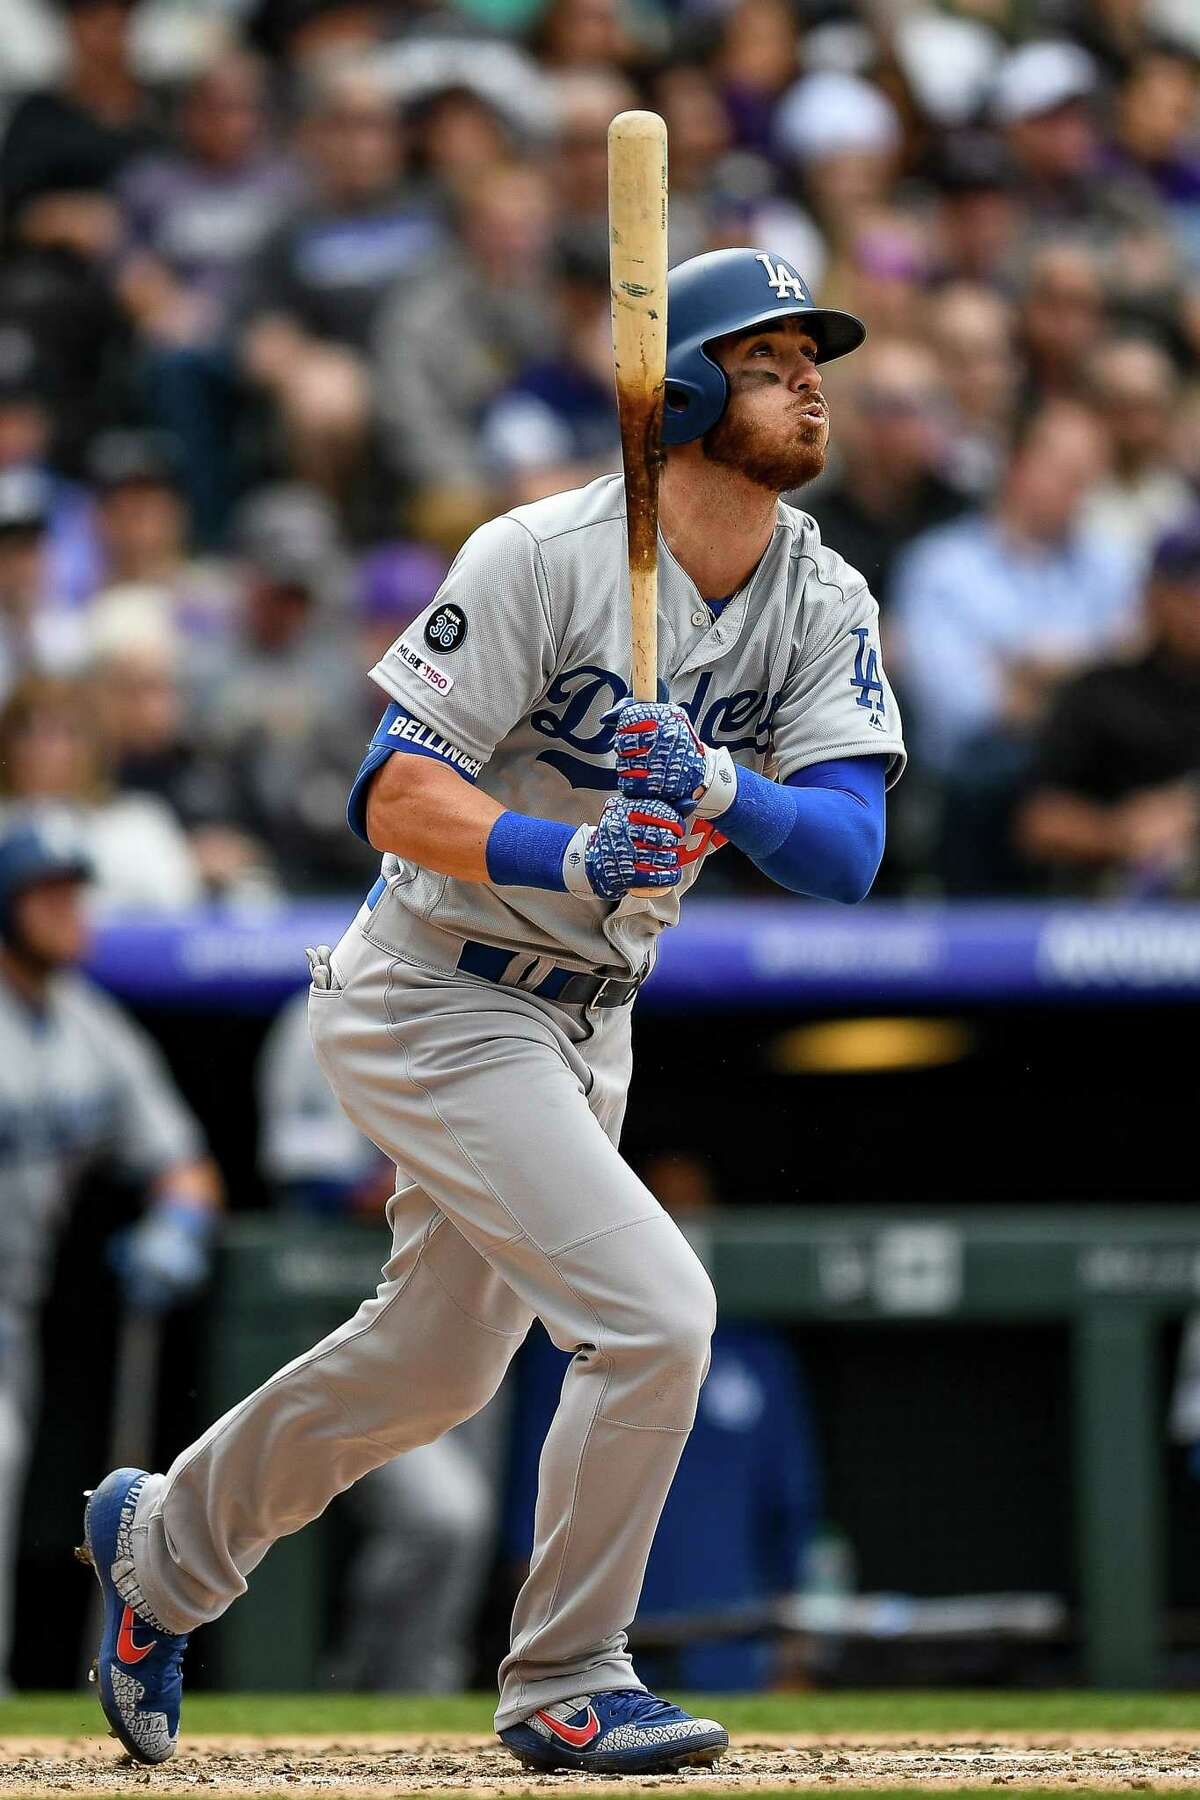 DENVER, CO - APRIL 5: Cody Bellinger #35 of the Los Angeles Dodgers watches the flight of a fifth inning three-run homer against the Colorado Rockies during the Colorado Rockies home opener at Coors Field on April 5, 2019 in Denver, Colorado. (Photo by Dustin Bradford/Getty Images)